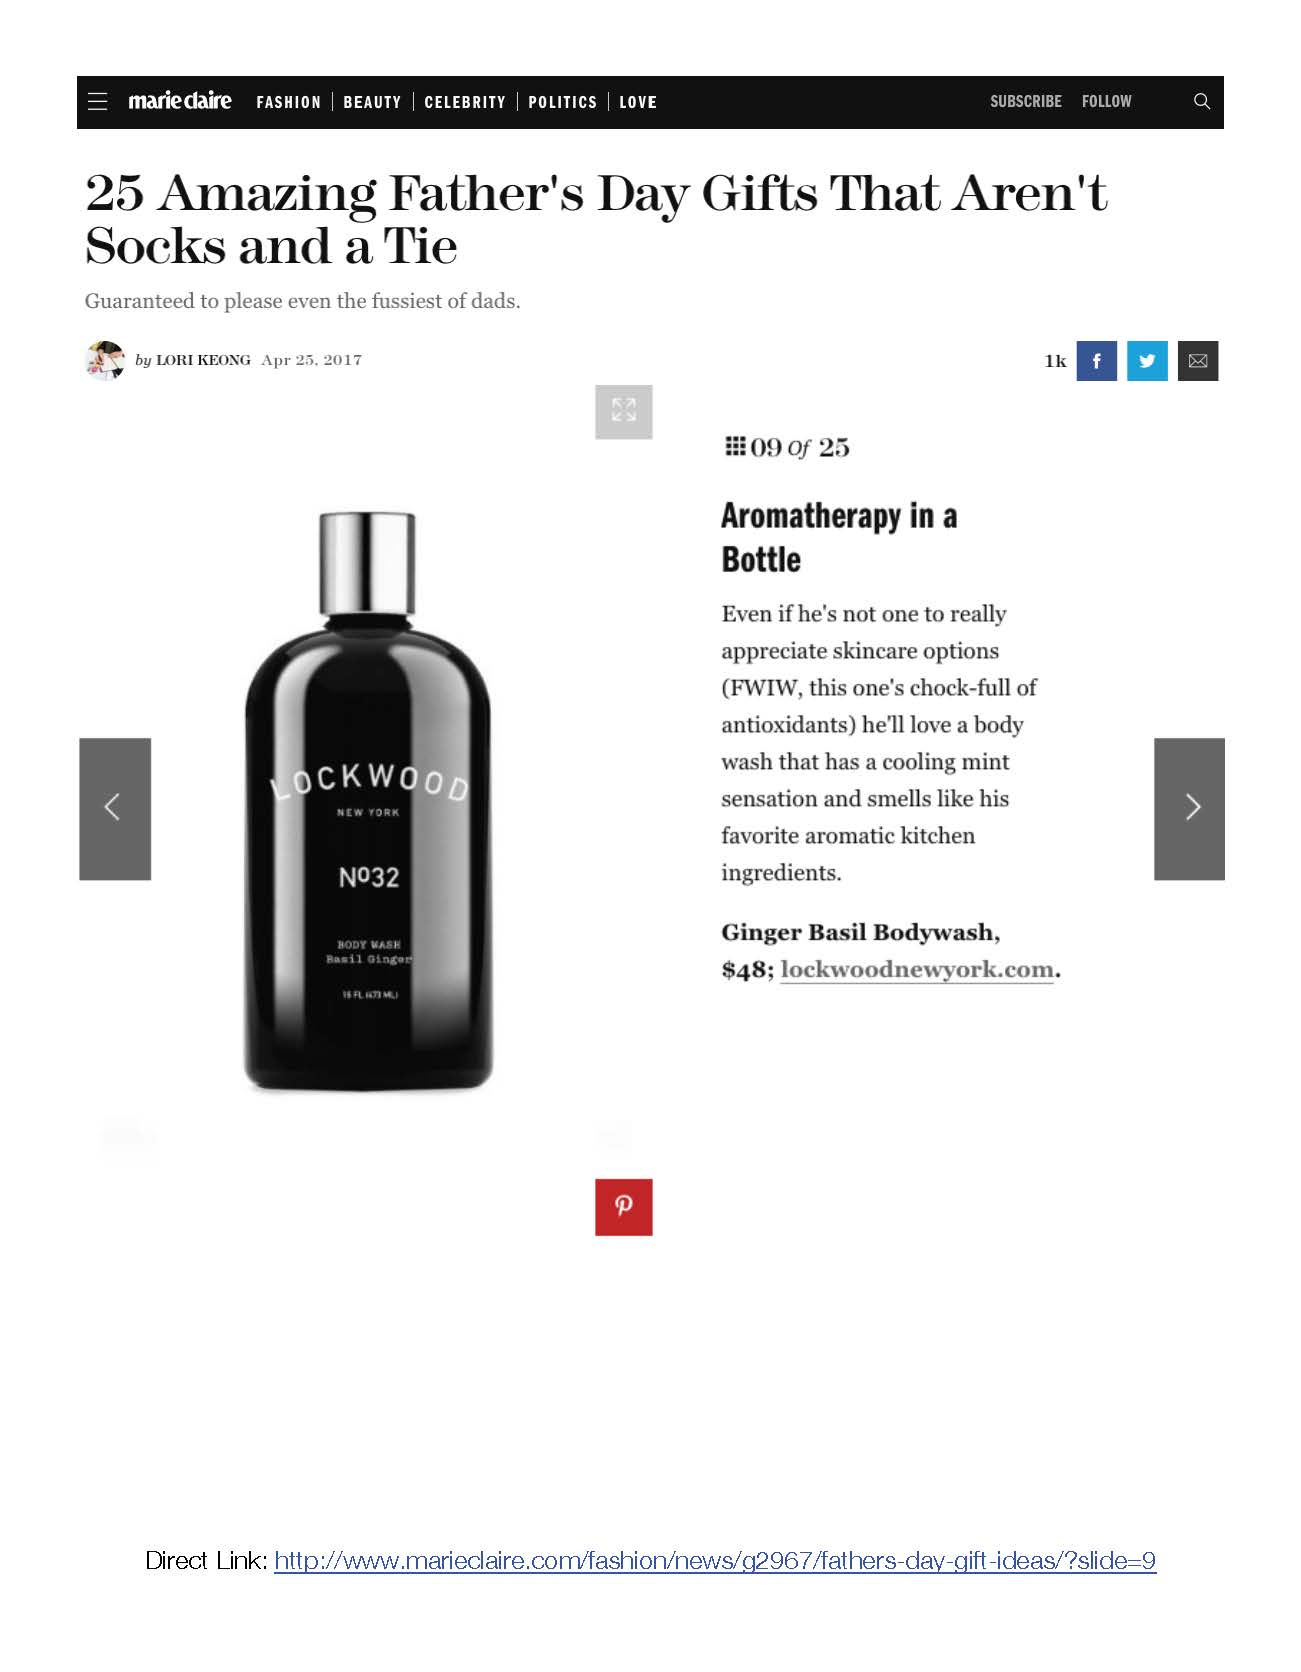 Marie Claire: Amazing Father's Day Gifts